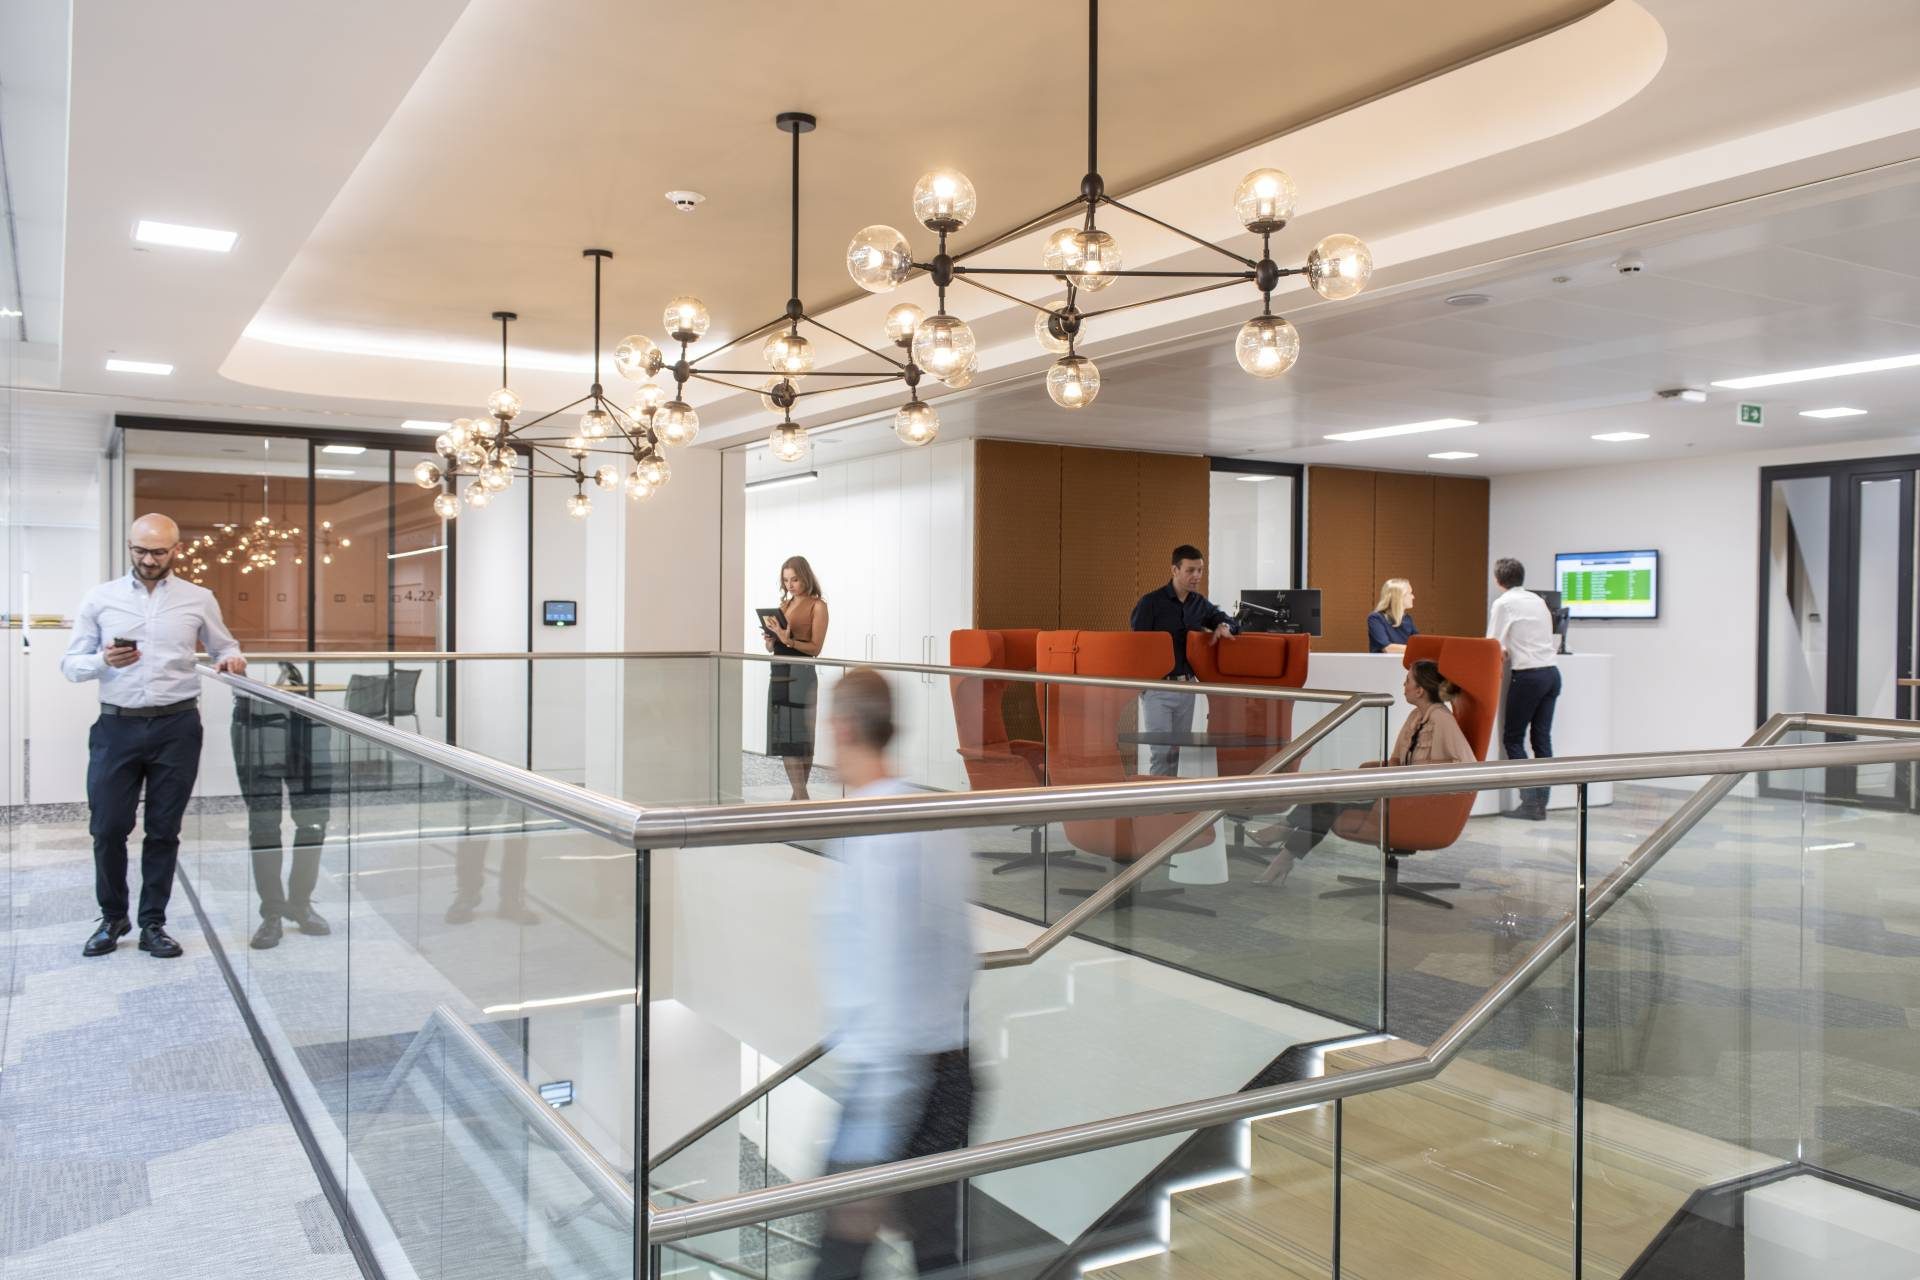 Credits: Withers LLP, London, UK